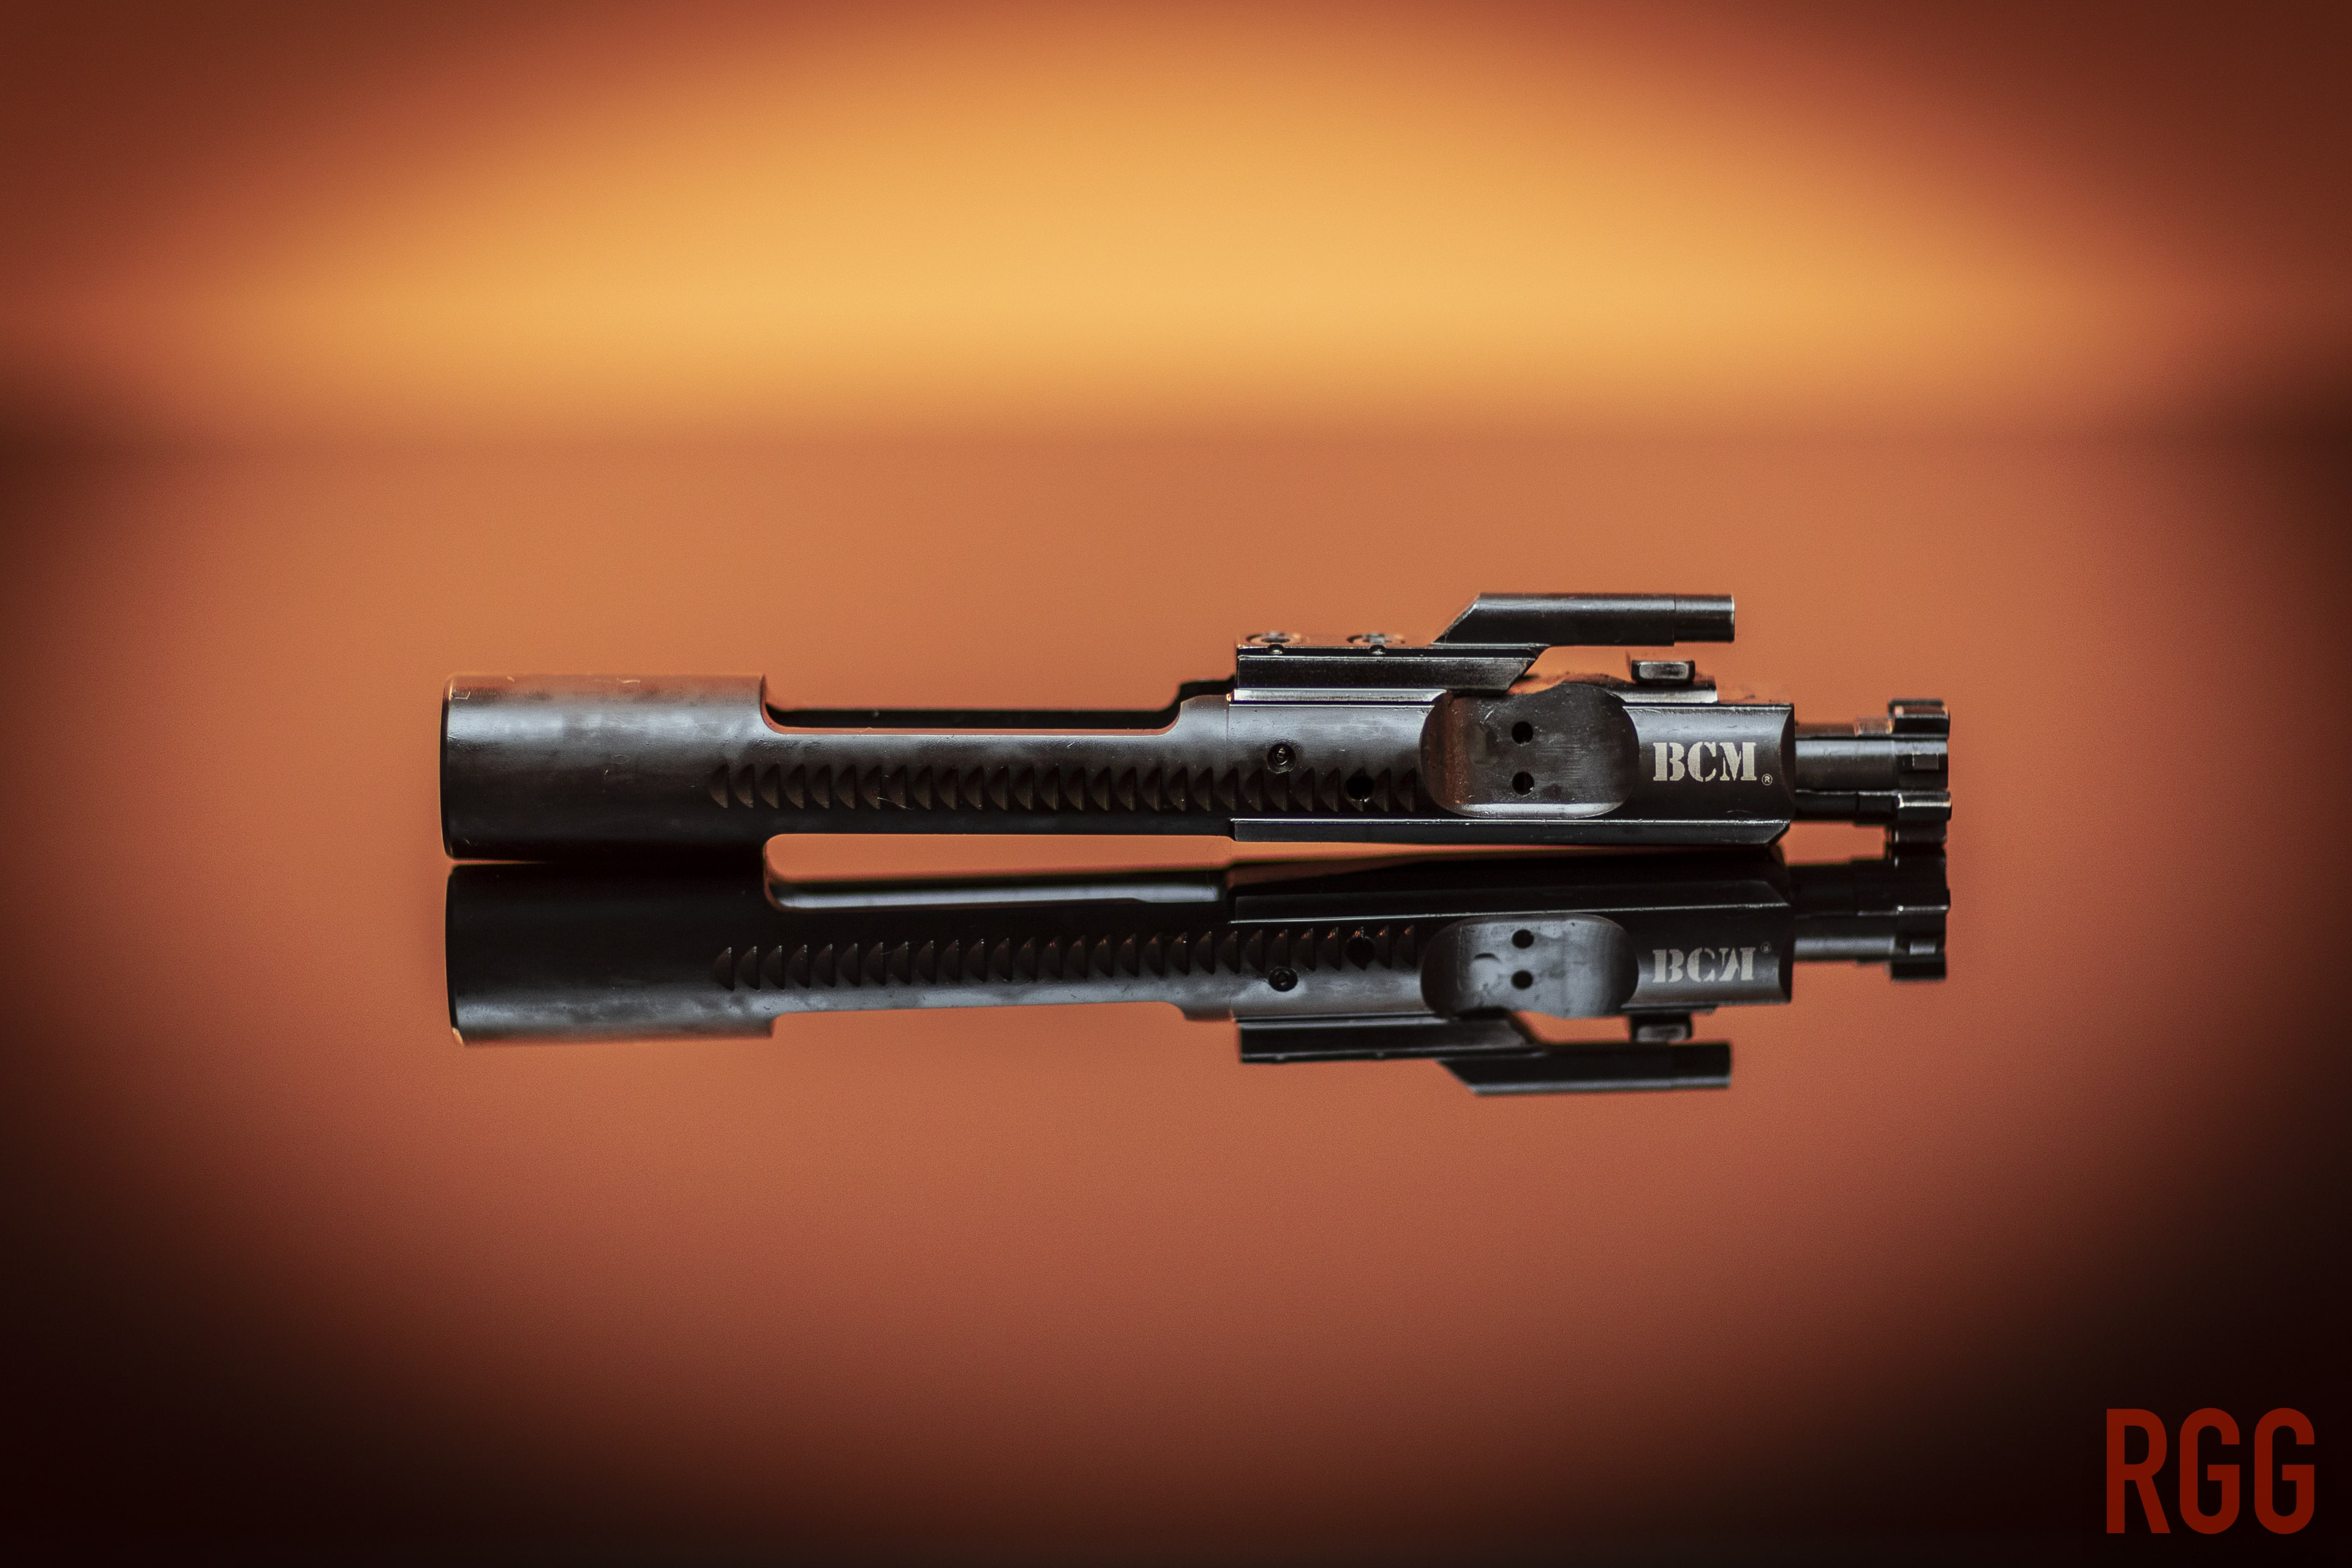 A Bravo Company Manufacturing M16-style Bolt Carrier Group.